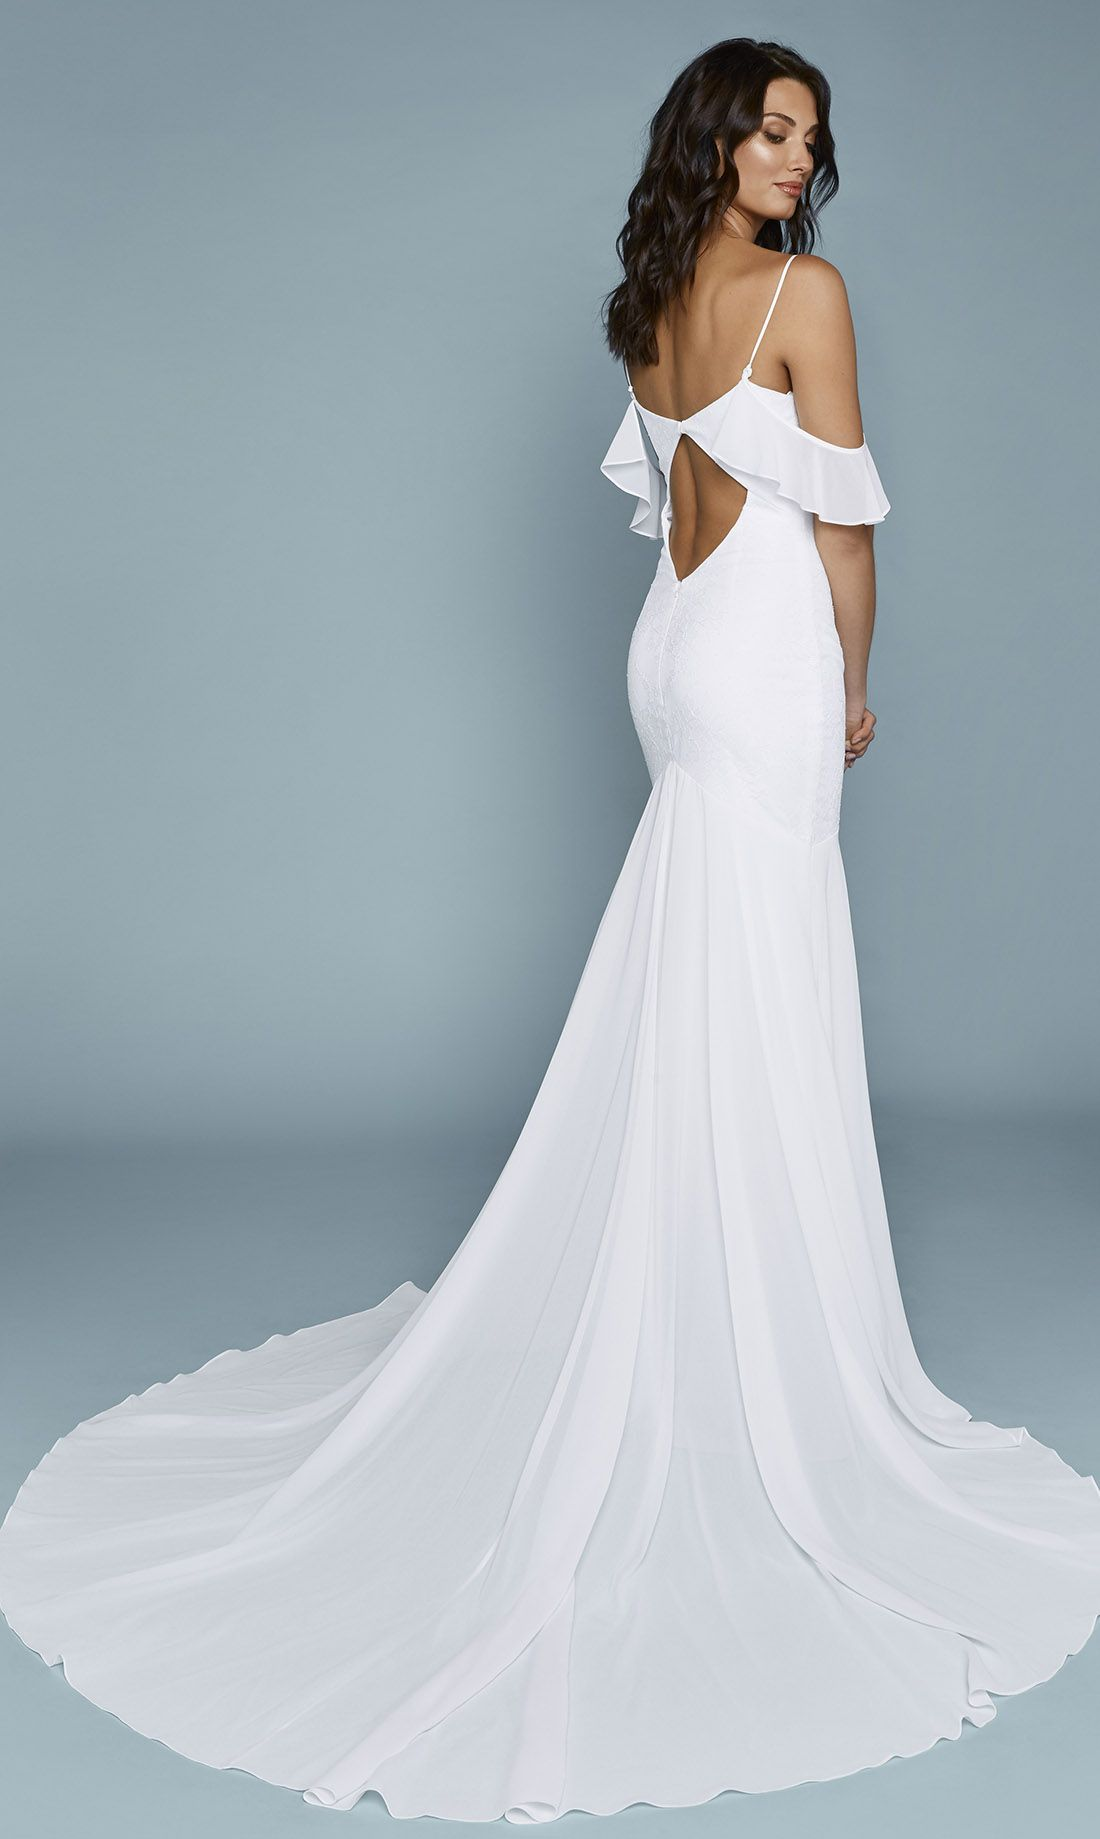 Tulum Chantilly Gown | Chantilly lace, Gowns and Wedding dress